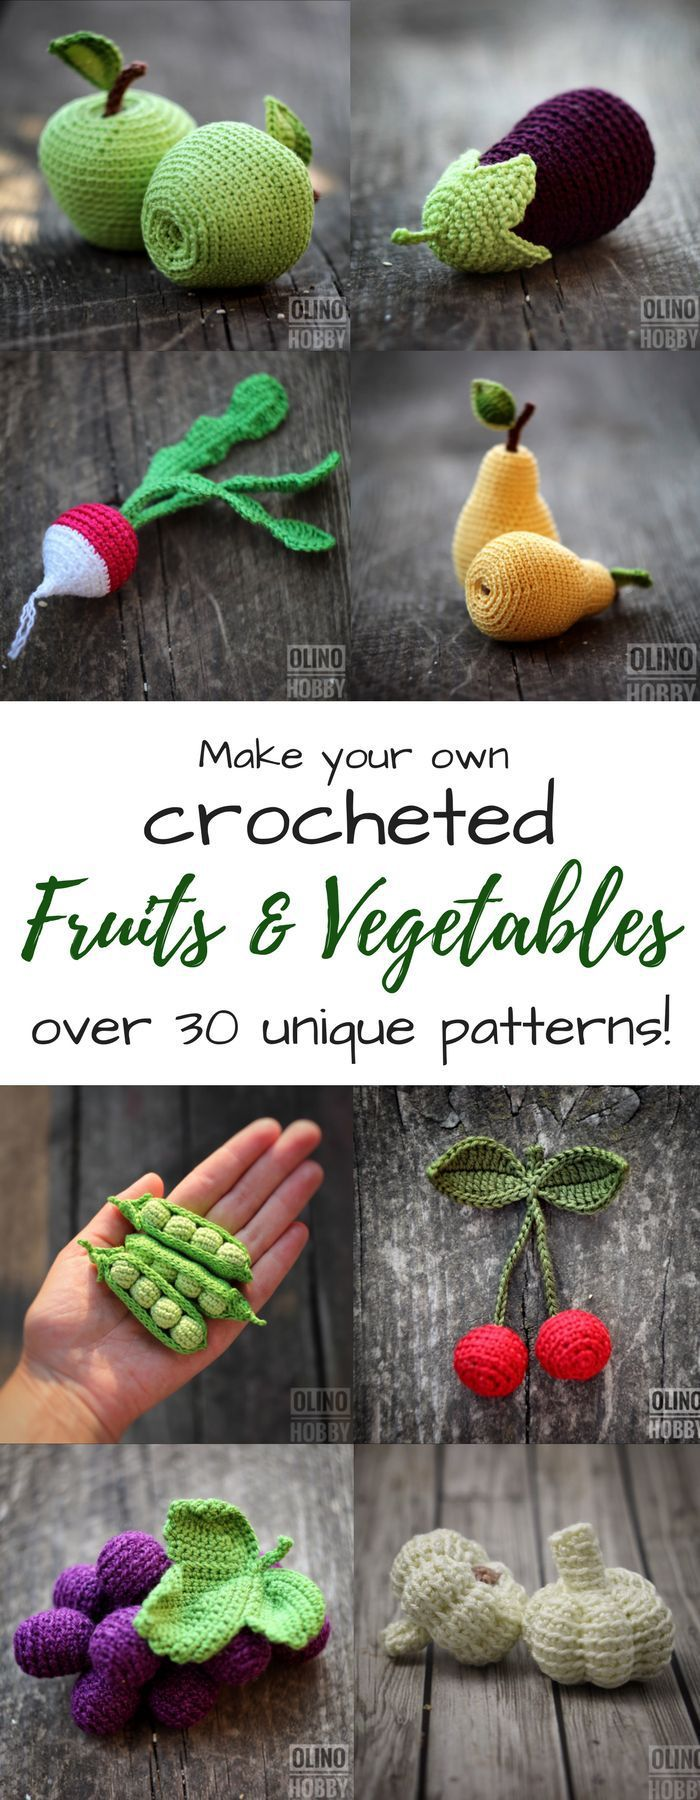 What stunning detail on these crocheted amigurumi fruits and vegetables! Excelle…